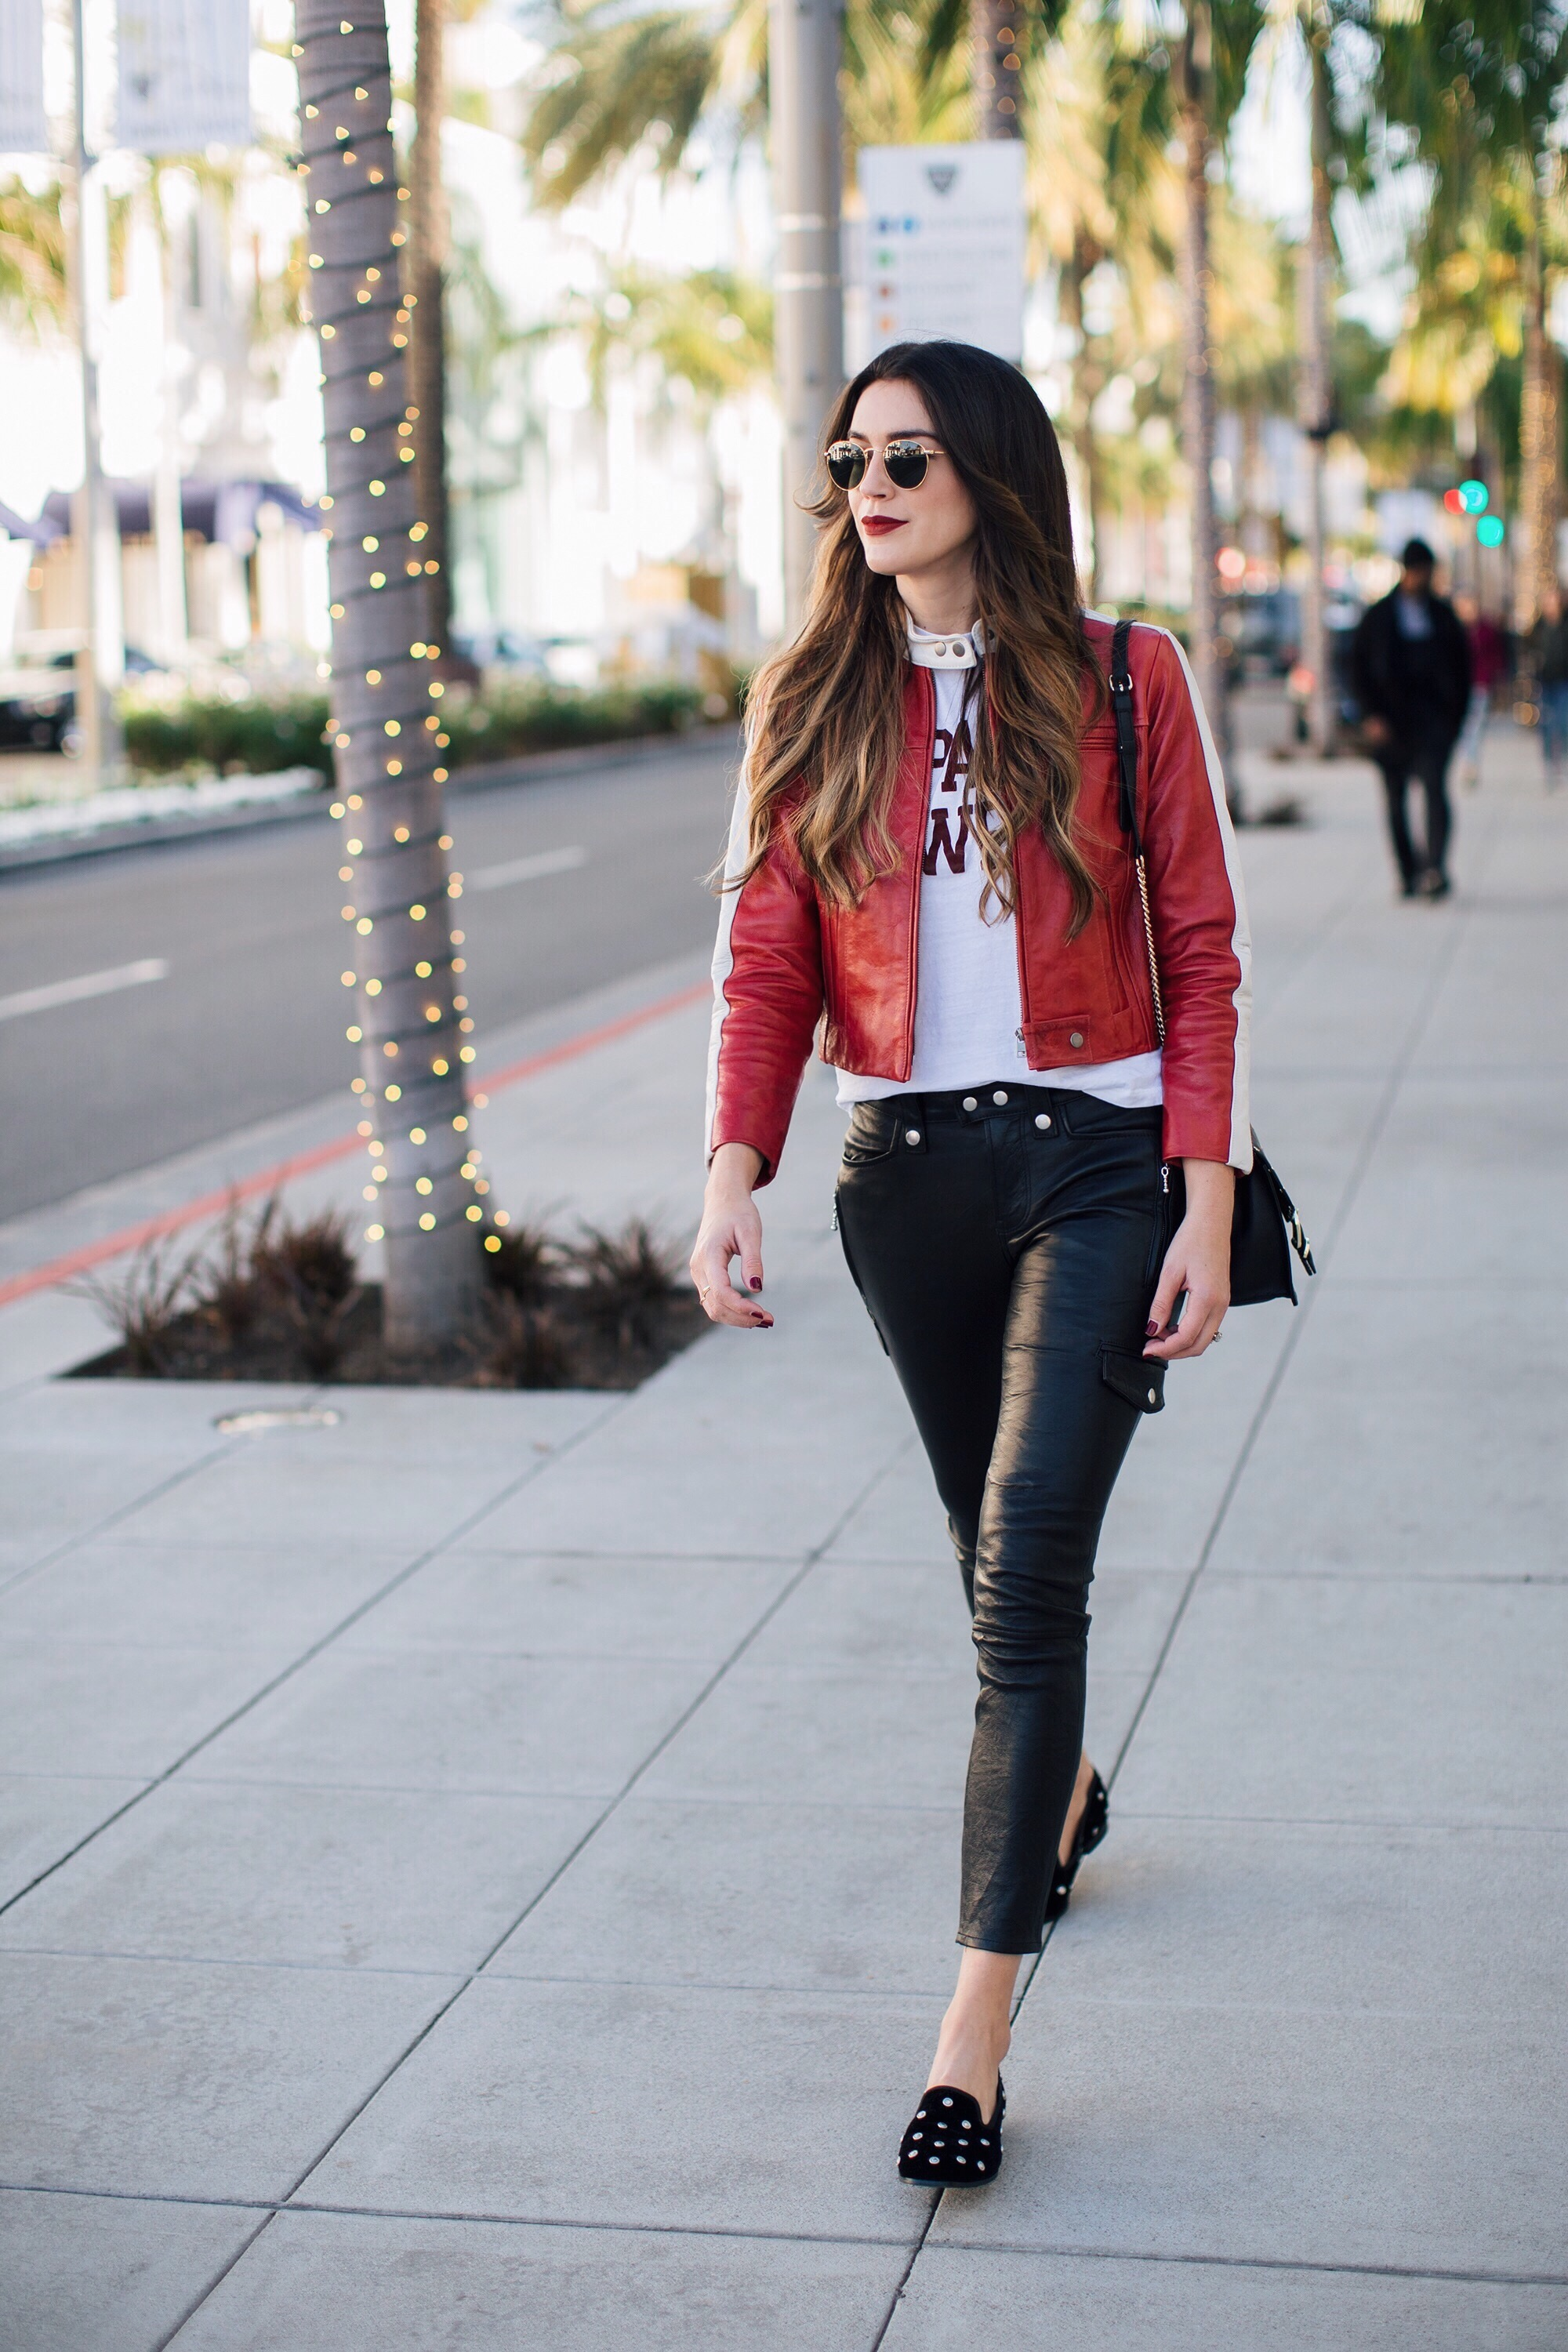 Frame denim red leather jacket